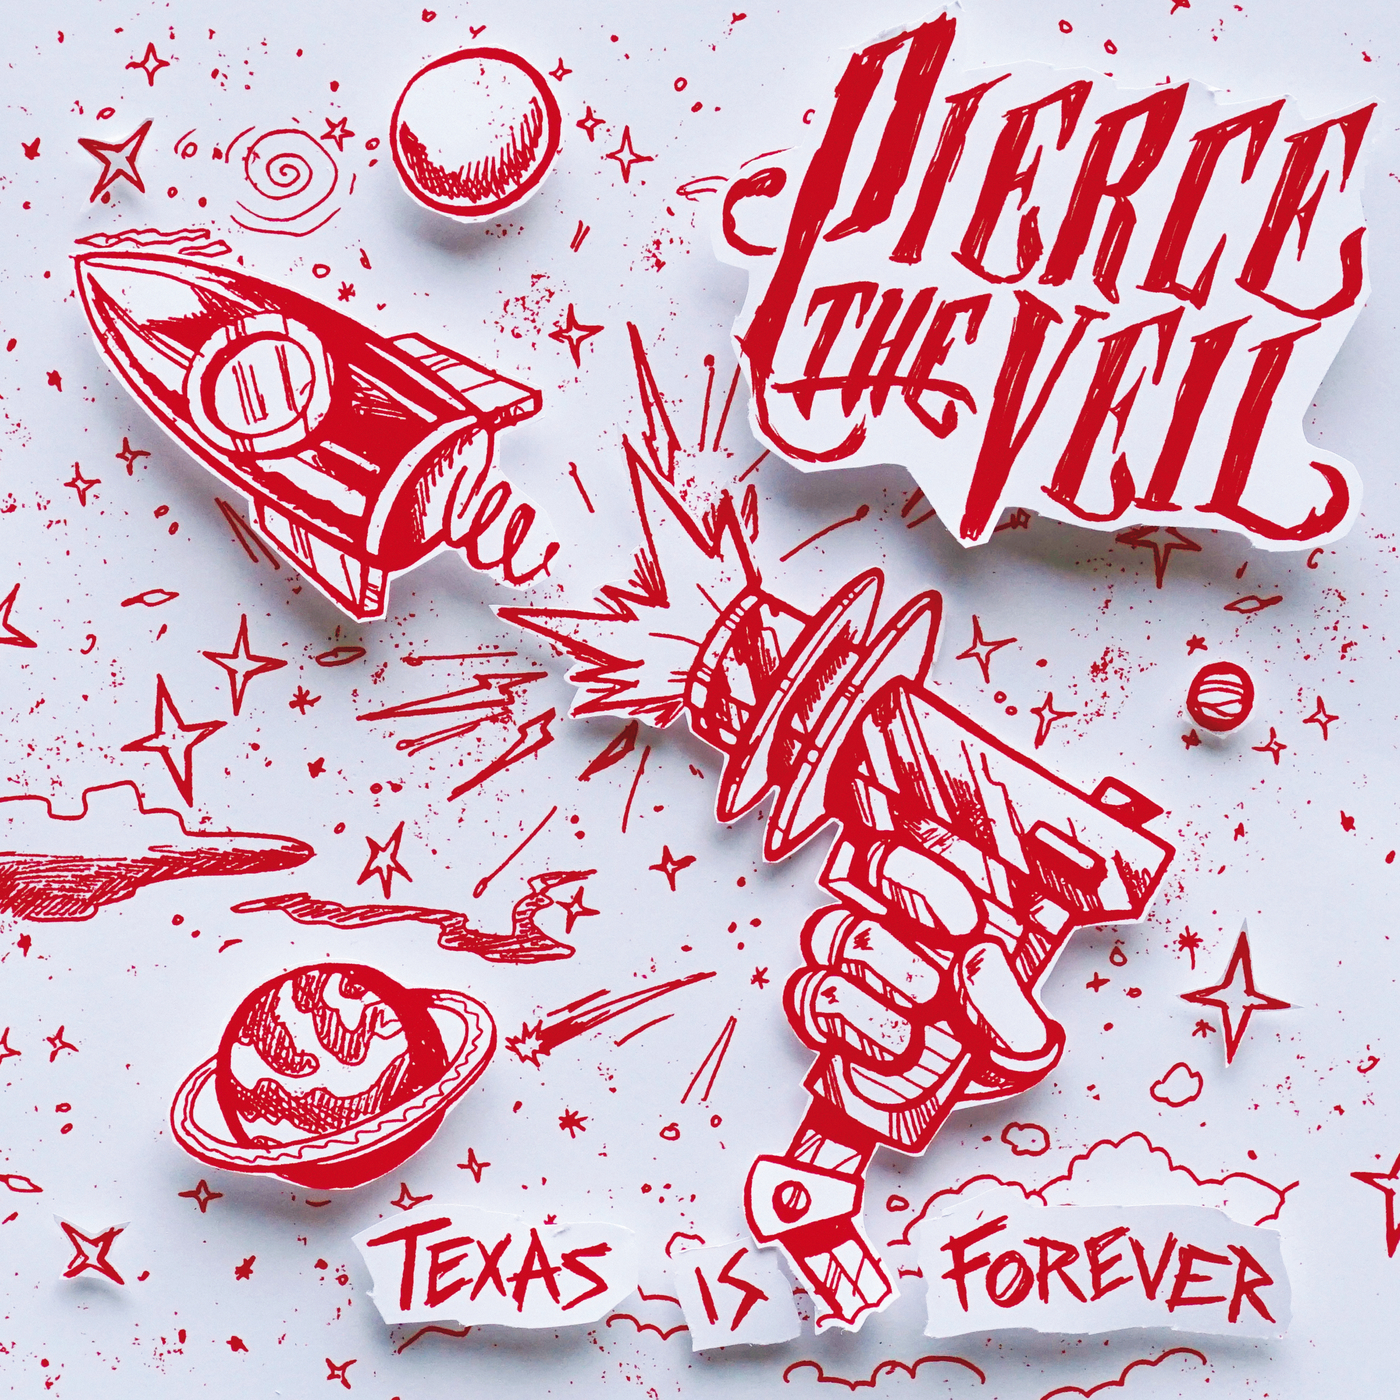 Pierce the Veil – Texas Is Forever [single] (2016)